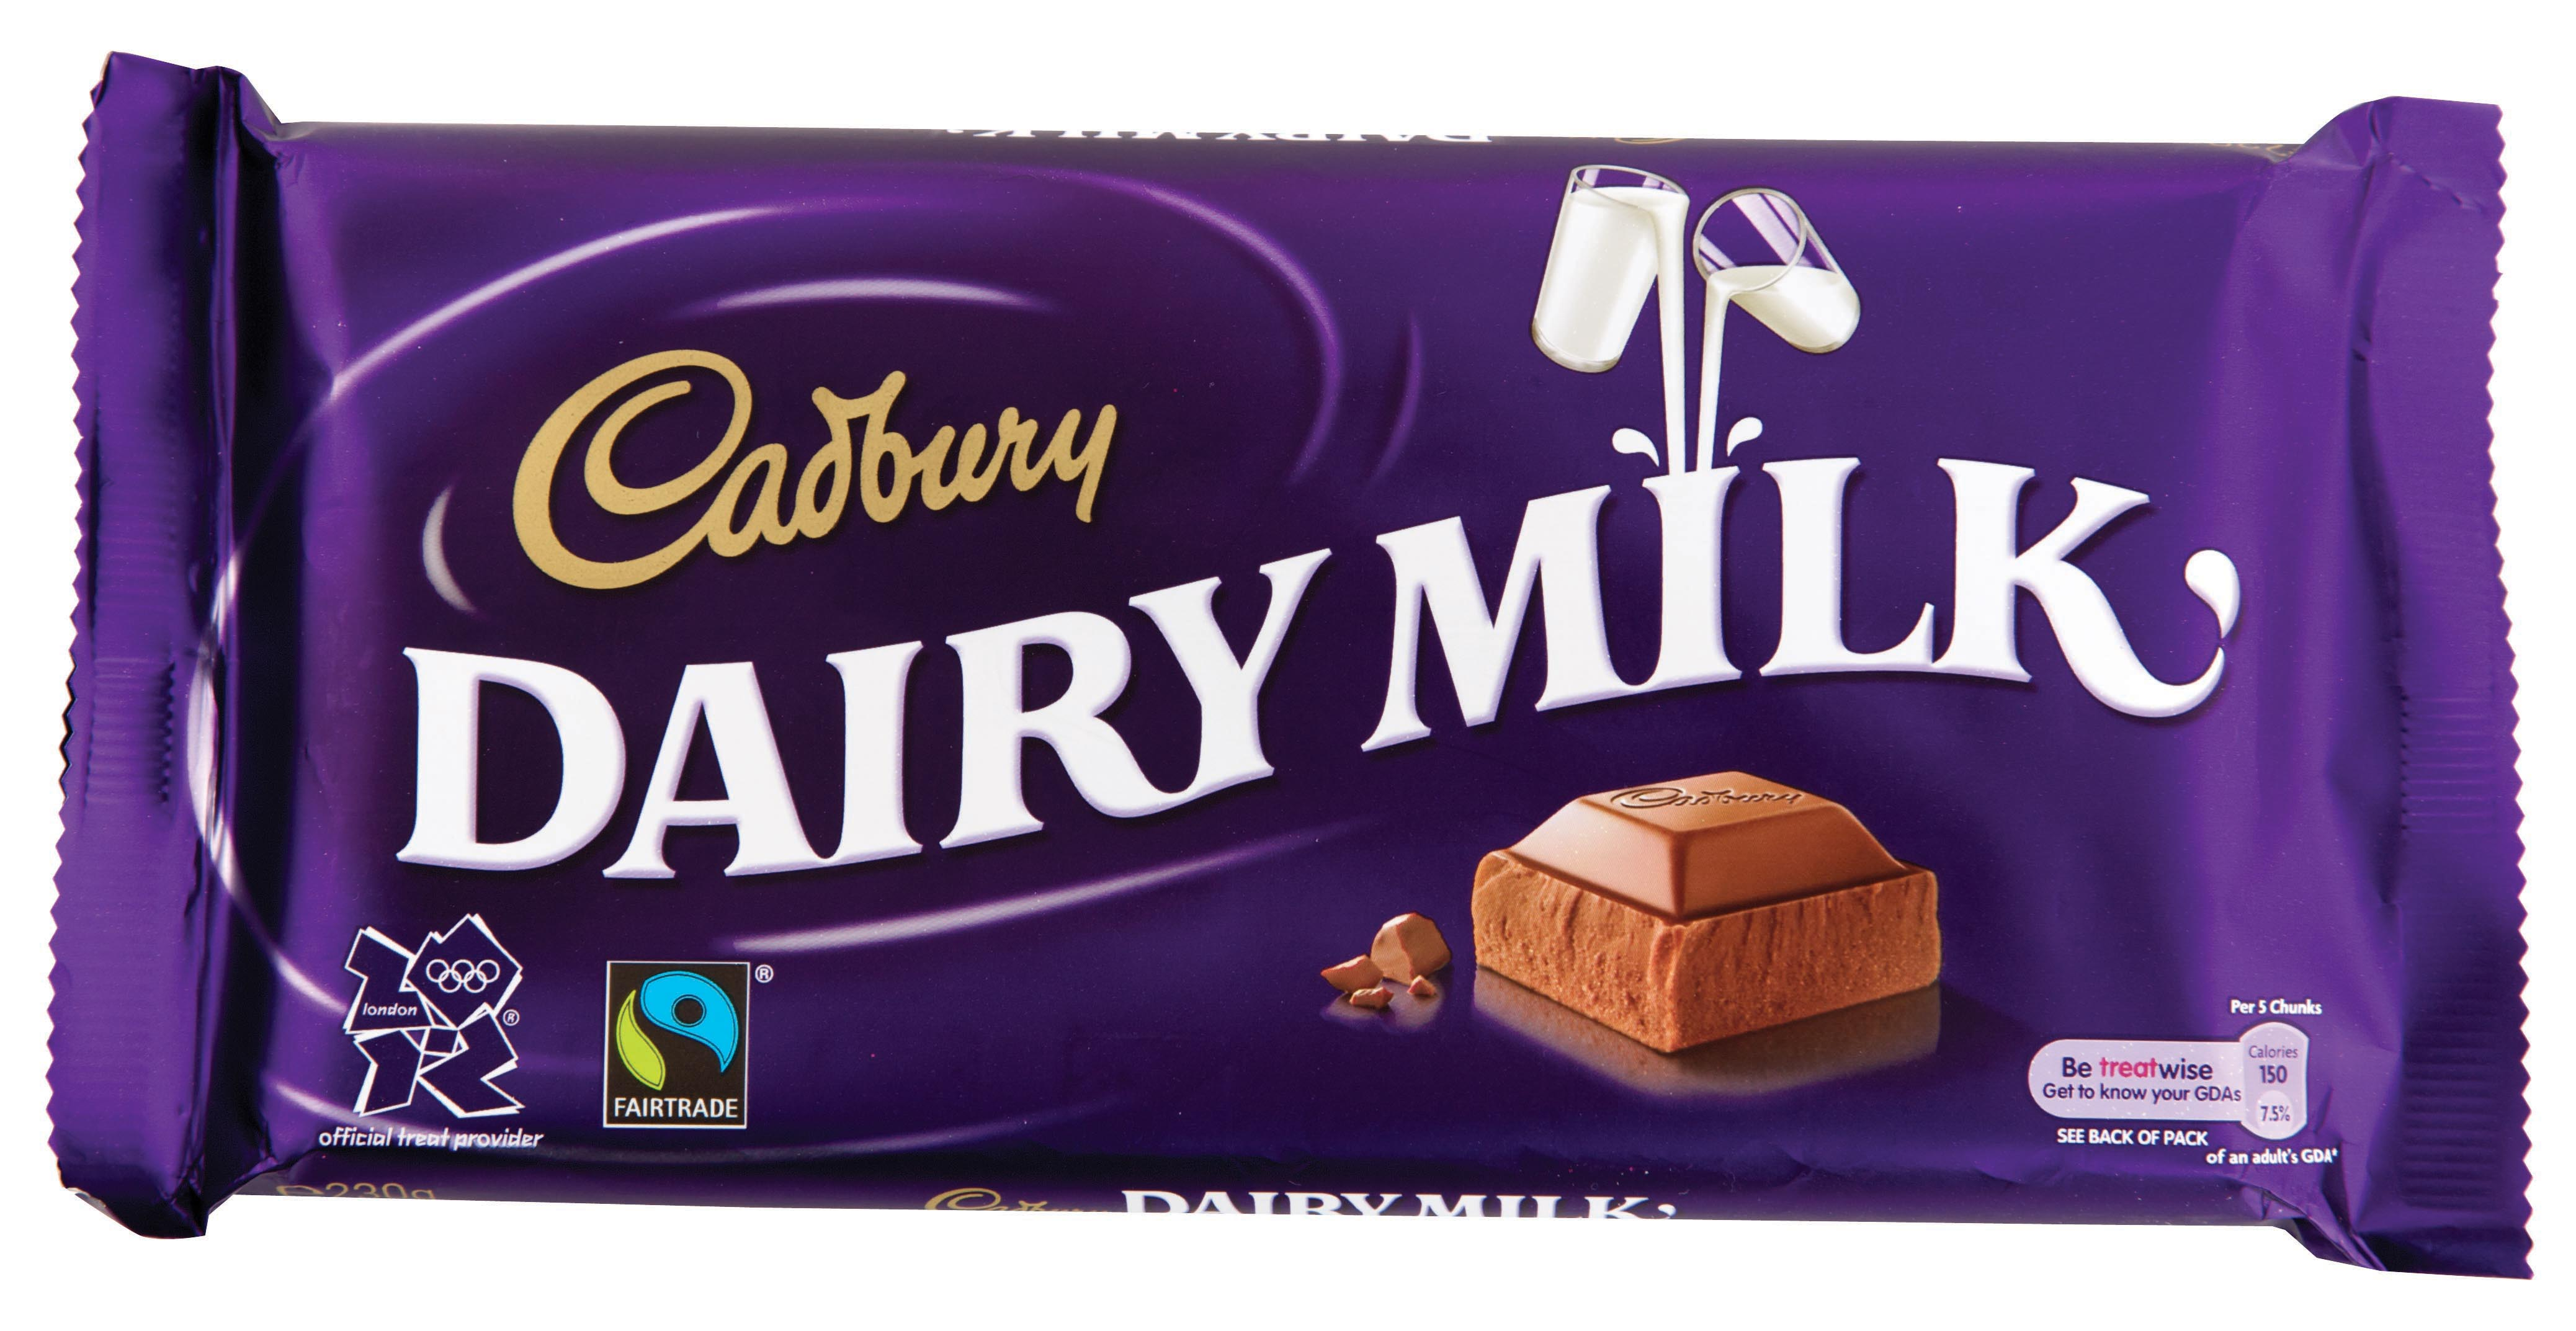 Choc wrappers akbaeenw choc wrappers thecheapjerseys Images